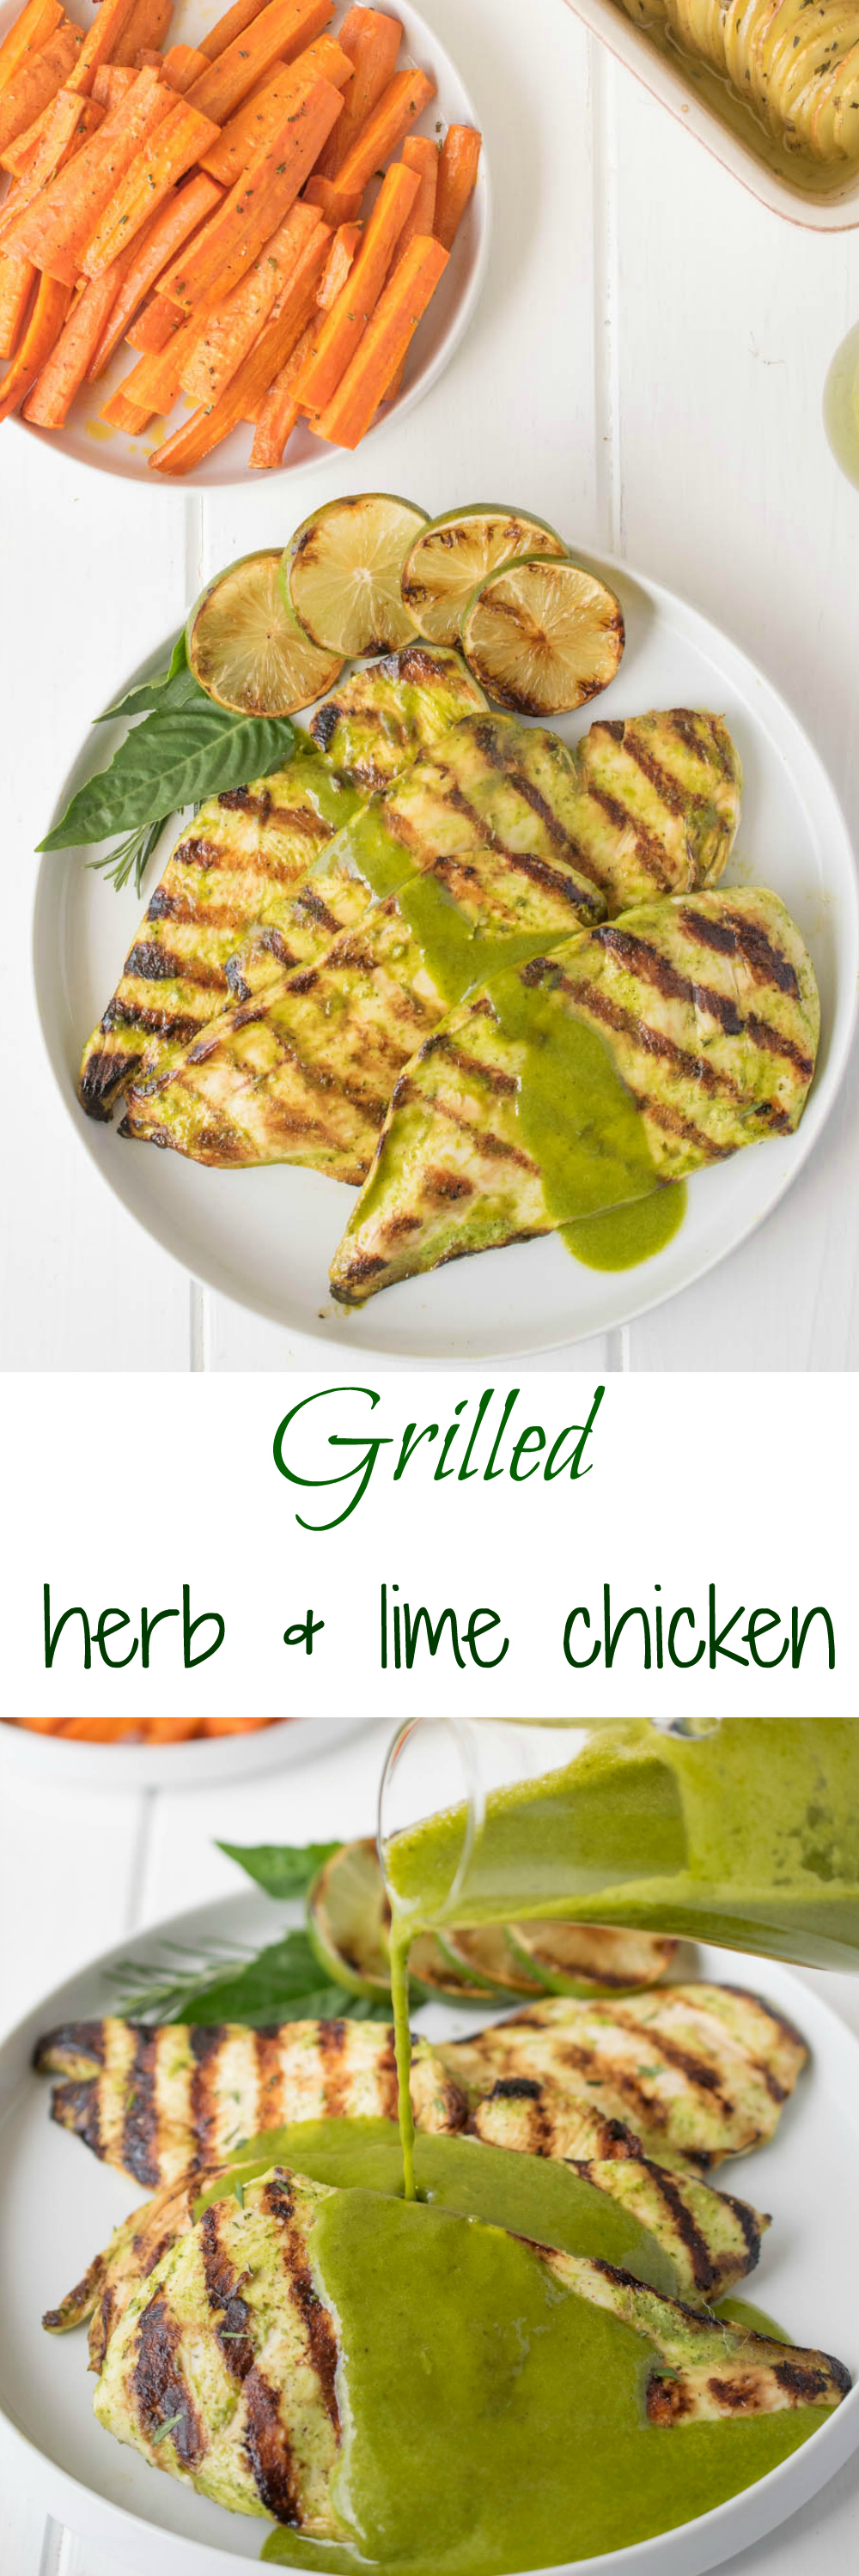 Grilled herb and lime chicken. Thin chicken breasts are marinated in a herb sauce with extra sauce used for finishing the dish, so easy and delicious.